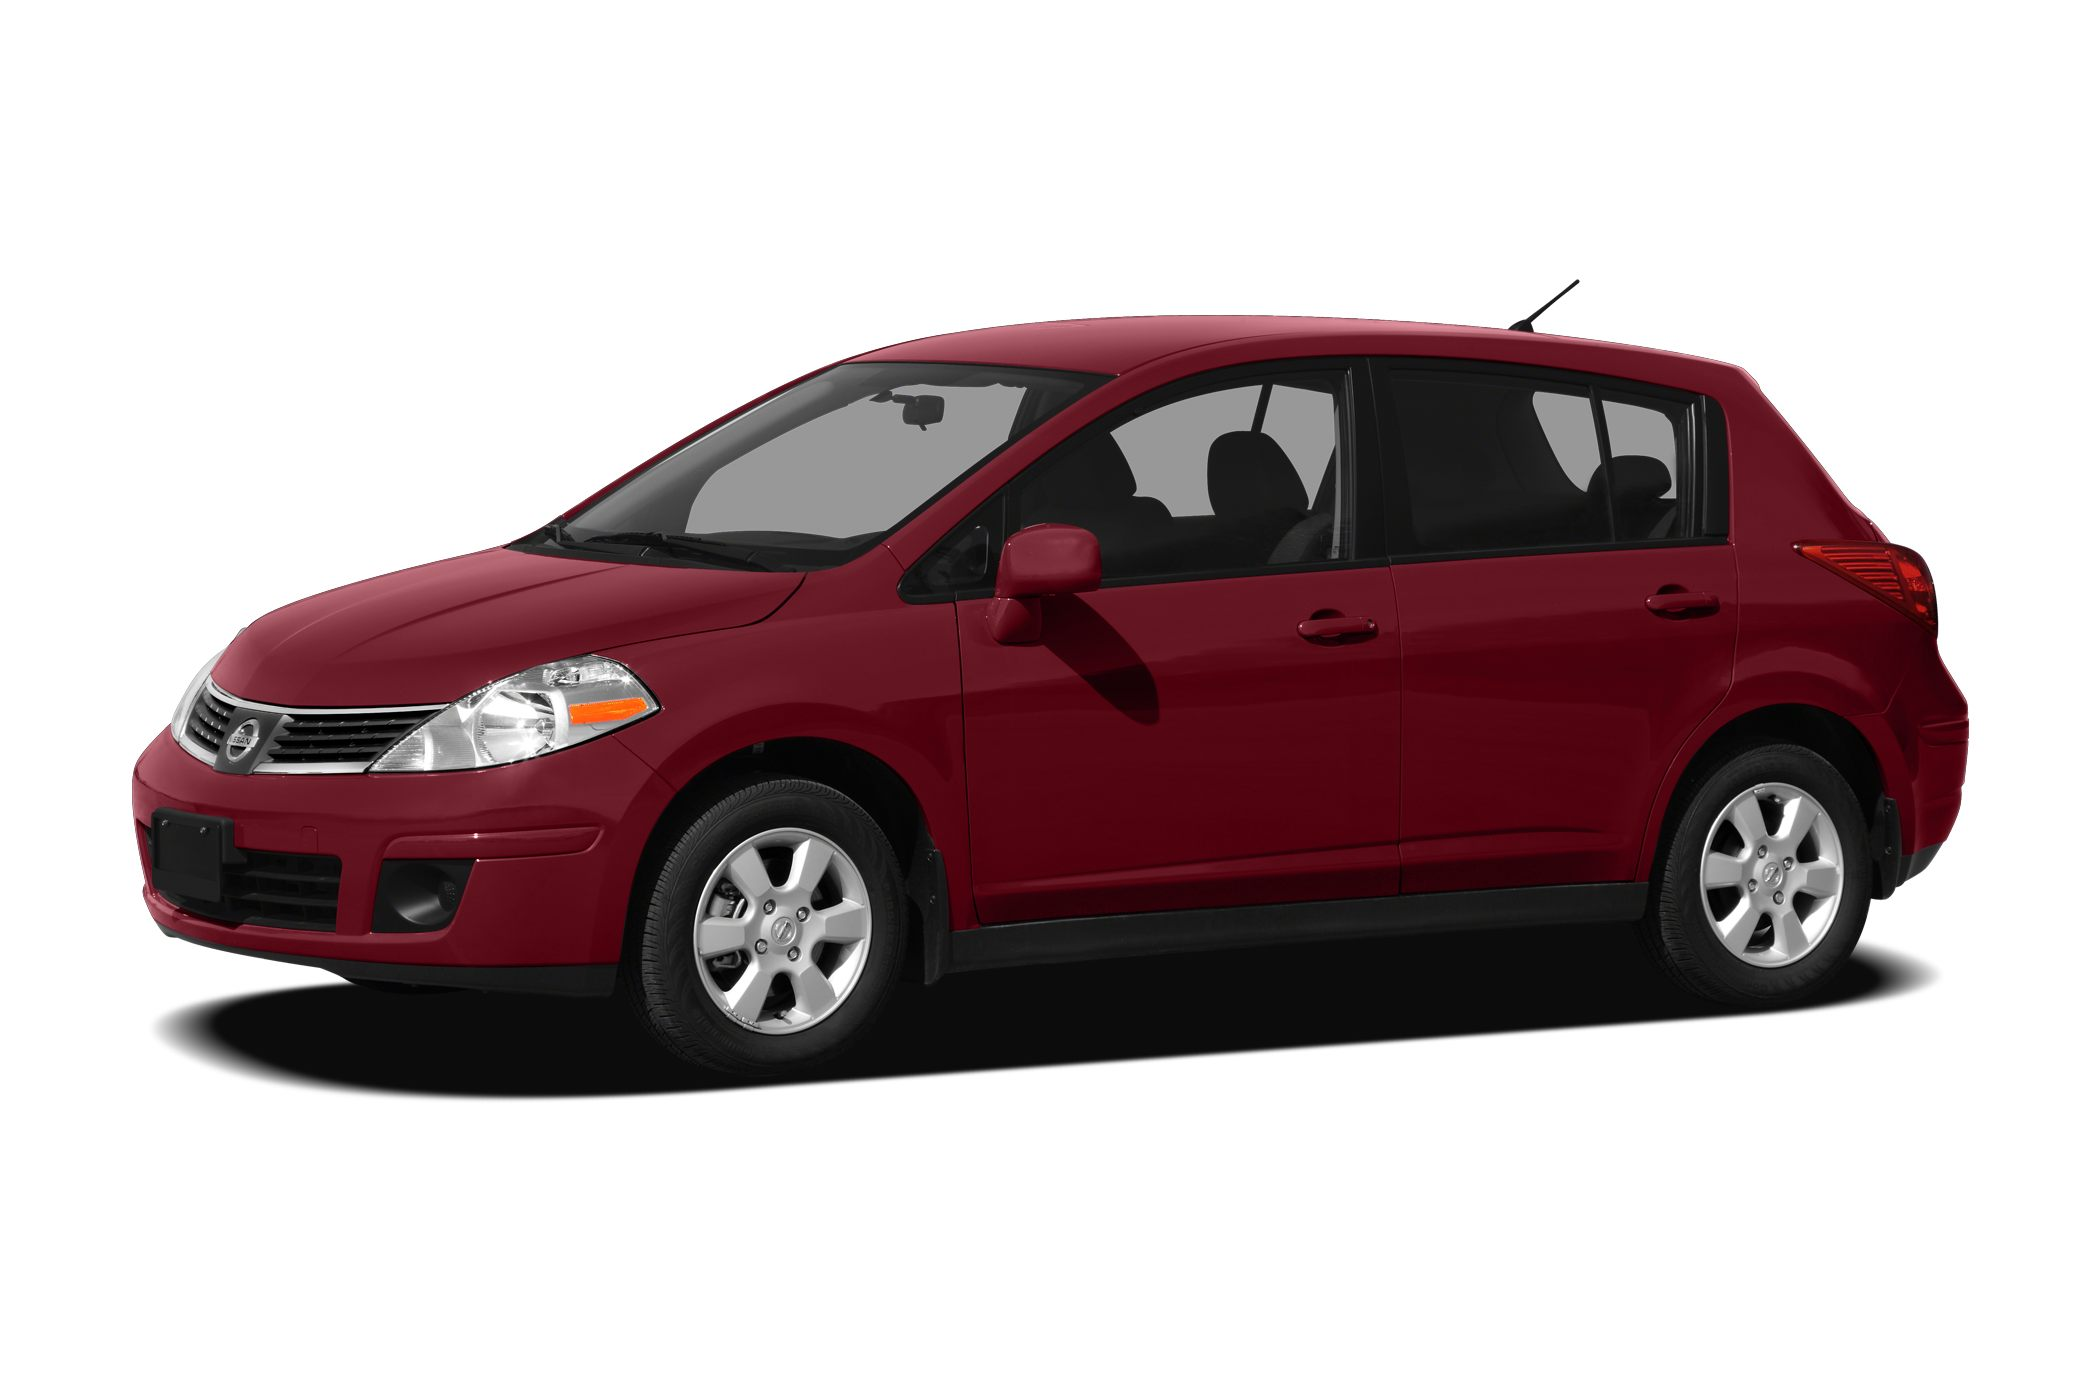 2012 Nissan Versa 1.8 S Hatchback for sale in Union City for $0 with 61,004 miles